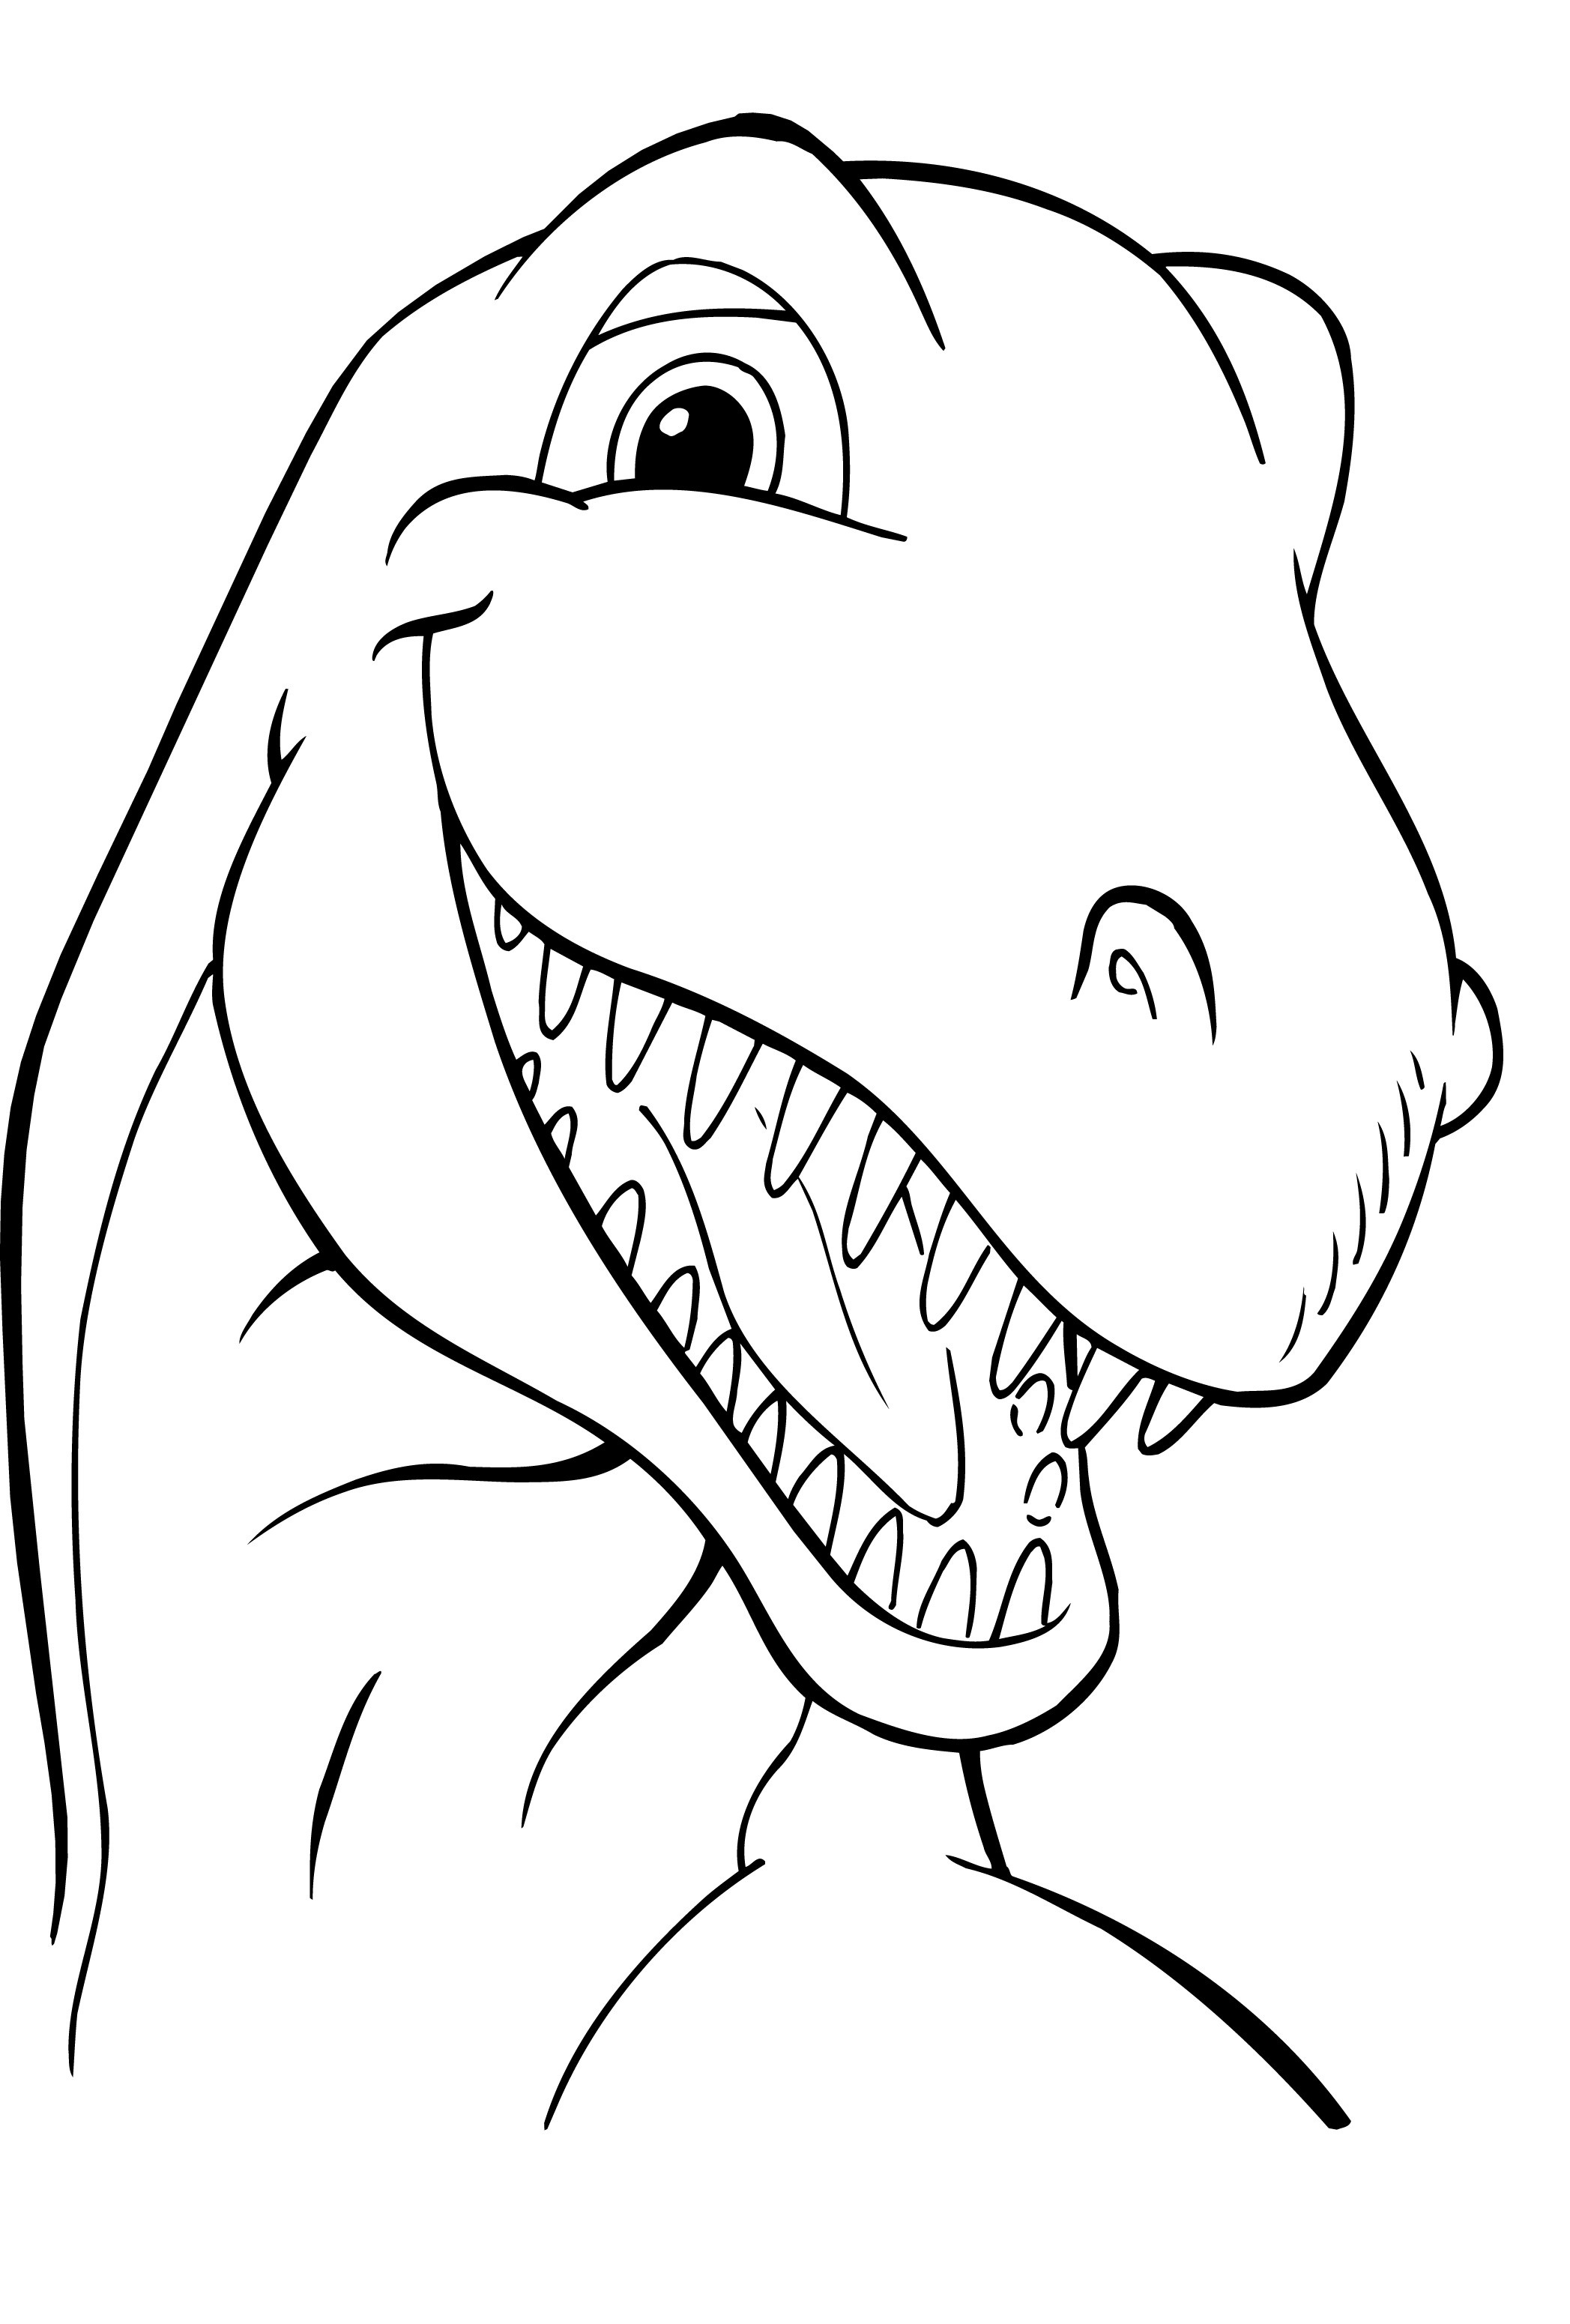 Dinosaur Coloring Pages Cute Cartoon Dinosaur Coloring Page Free ... | 3101x2095